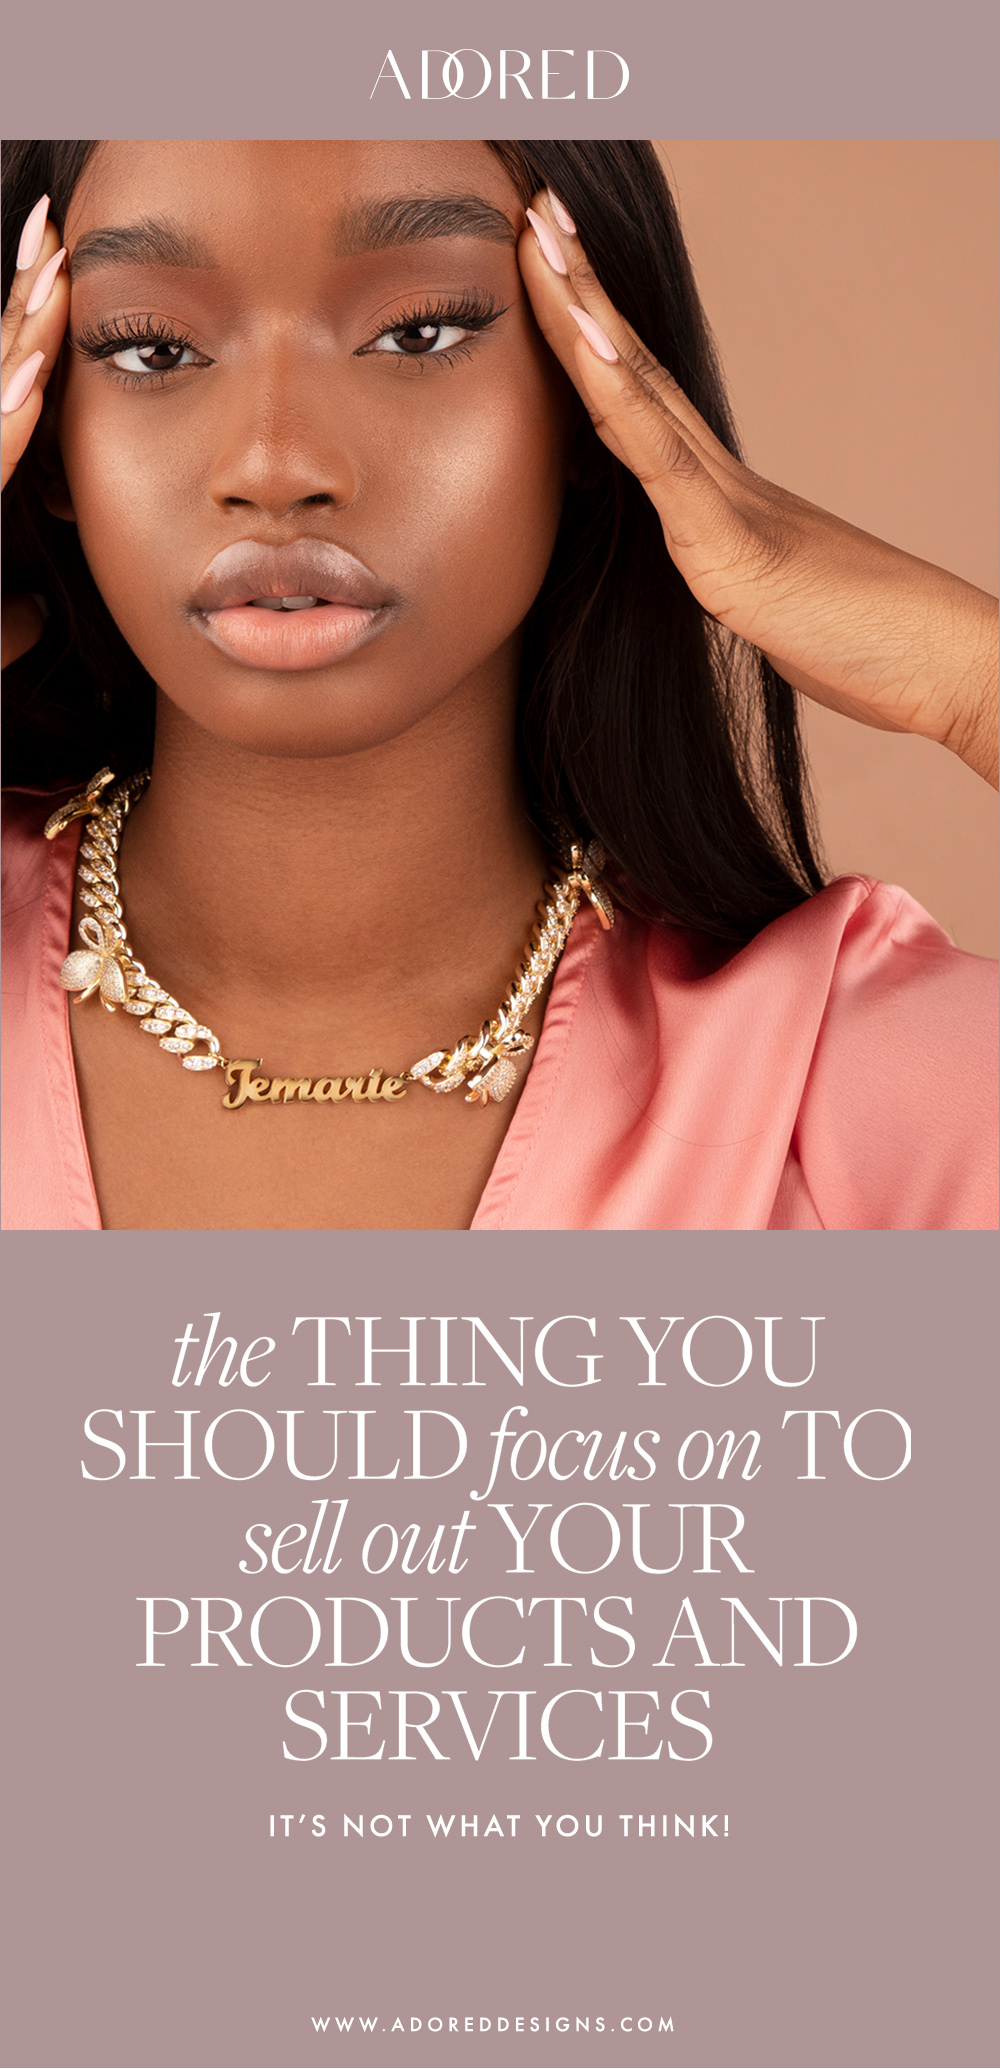 The thing you should focus on to sell out your products and services